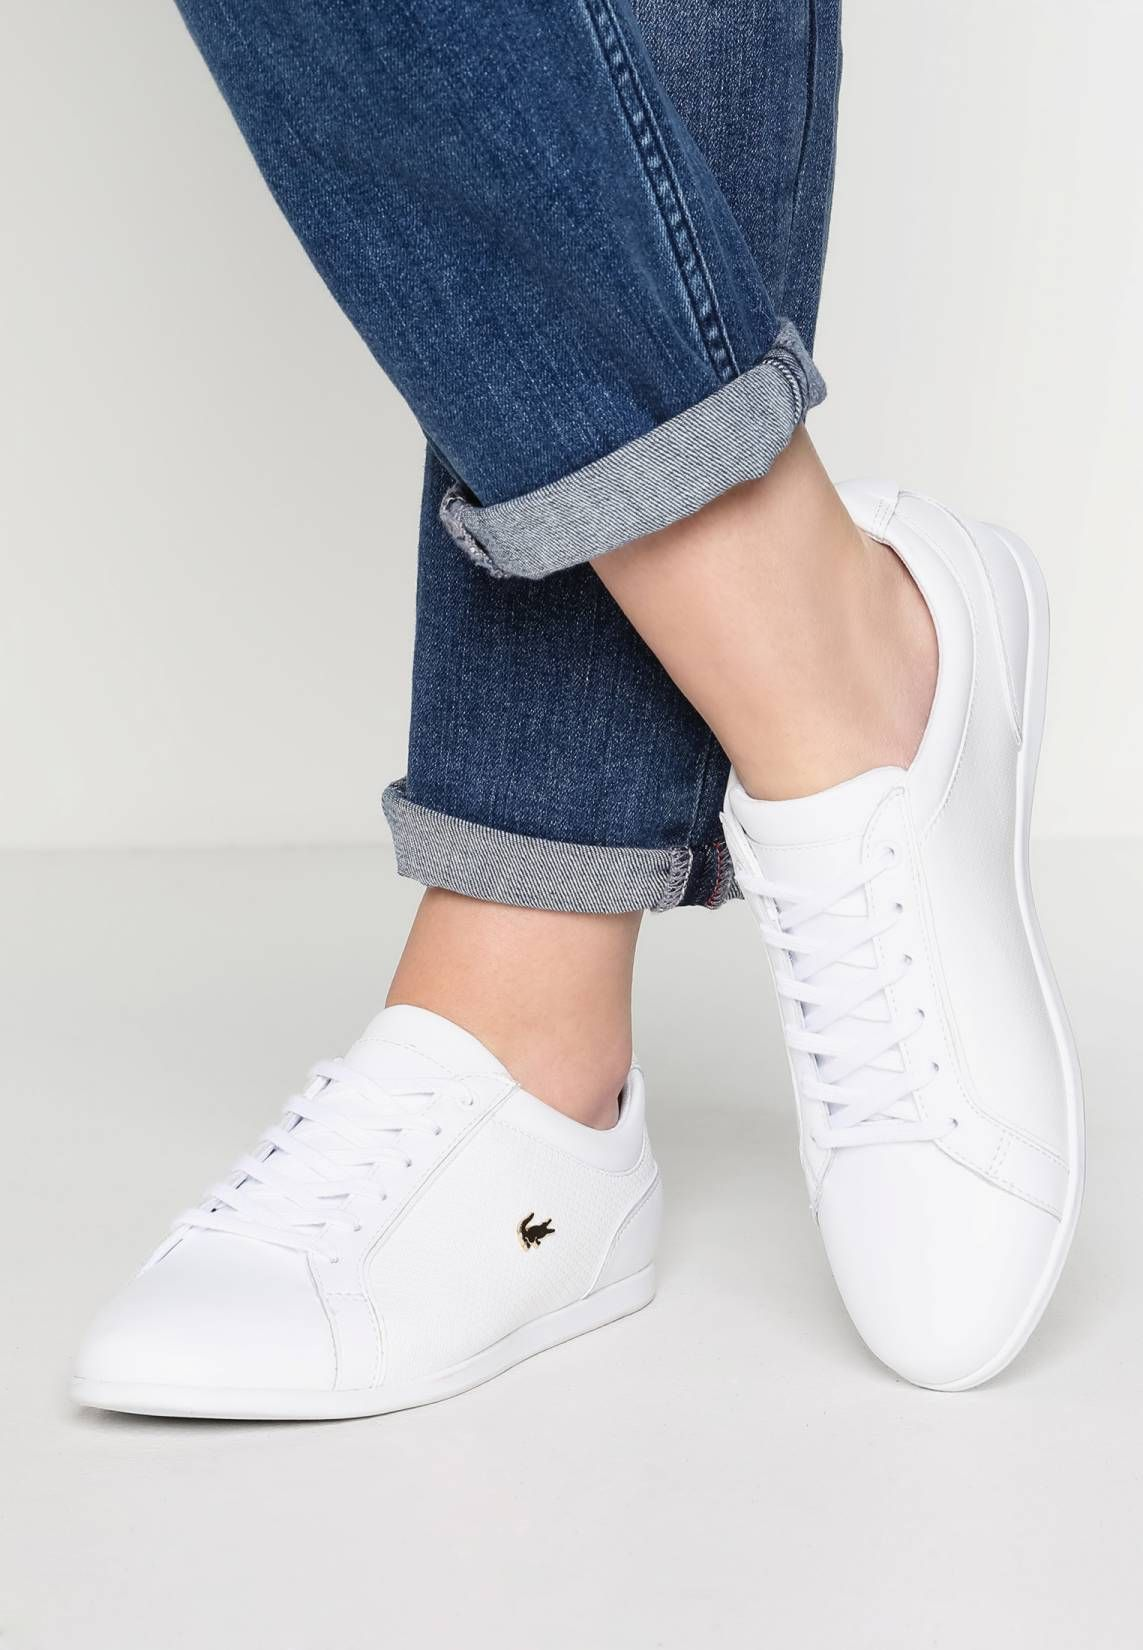 36f36b0f96 Lacoste. REY - Trainers - white. Pattern:plain. Sole:synthetics. Shoe  tip:round. Padding type:Cold padding. Heel type:flat.